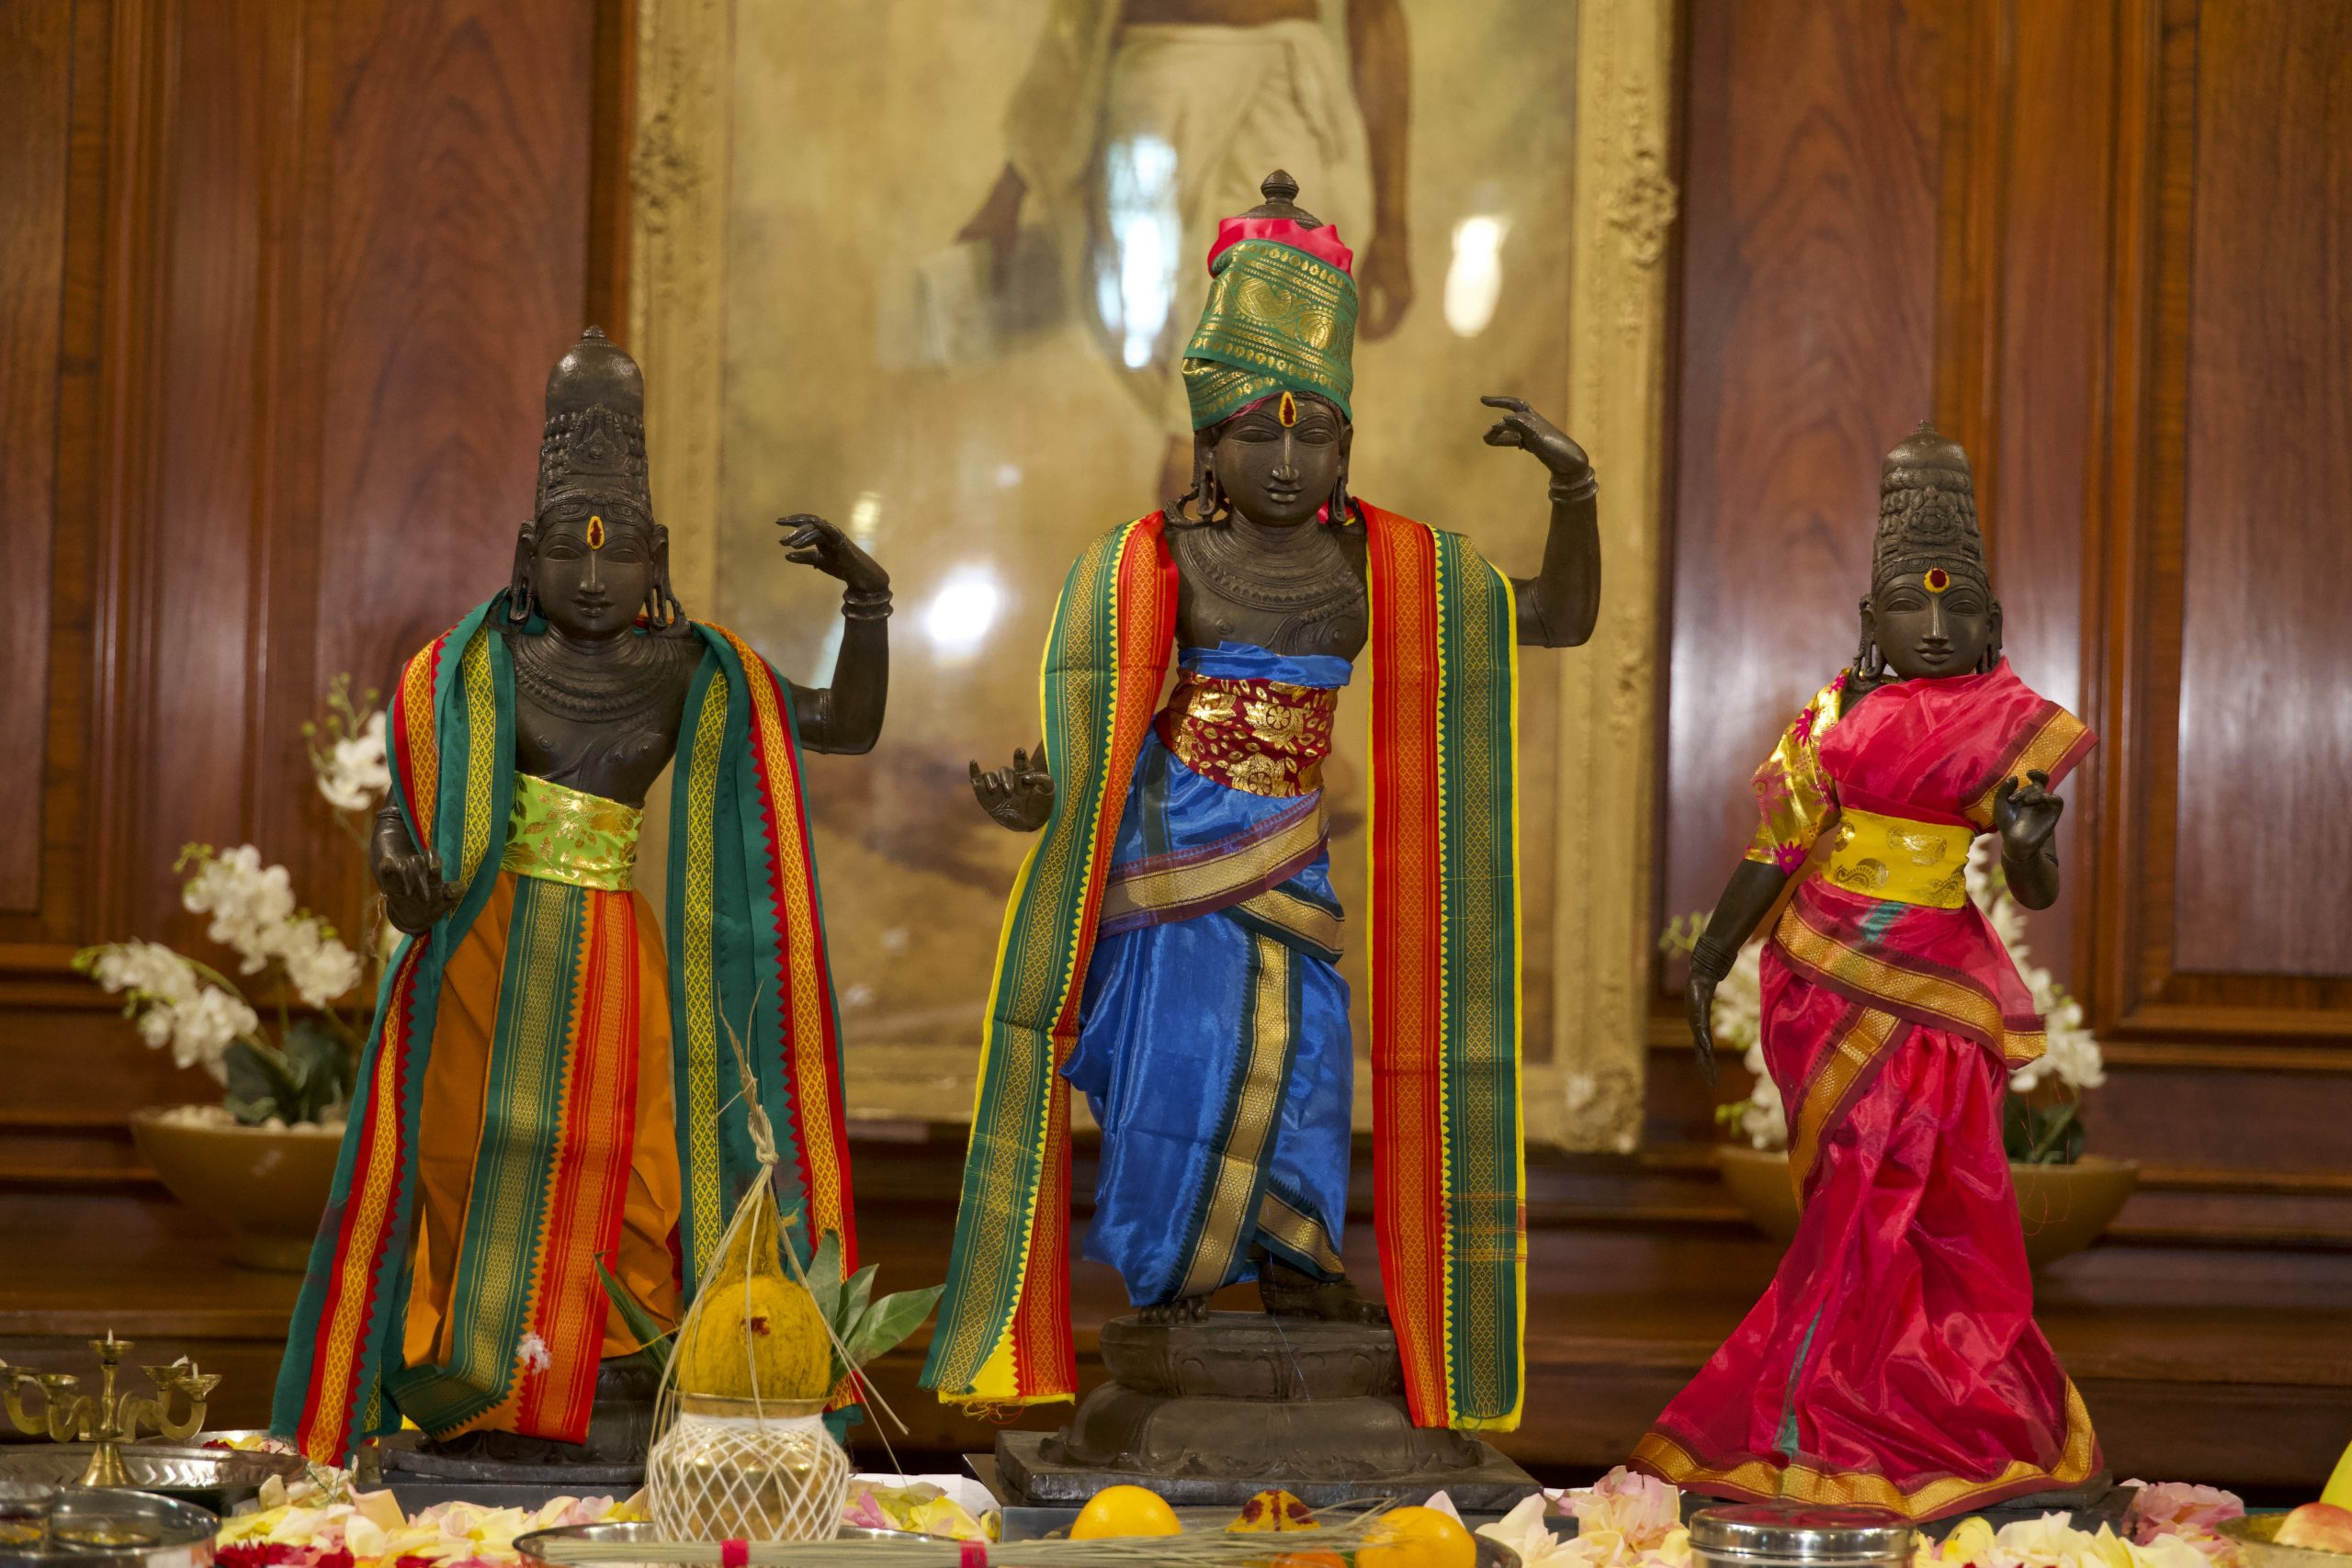 Ancient idols of Lord Ram, Sita and Lakshman after a ritual ahead of being handed over Indian officials at India House, London.